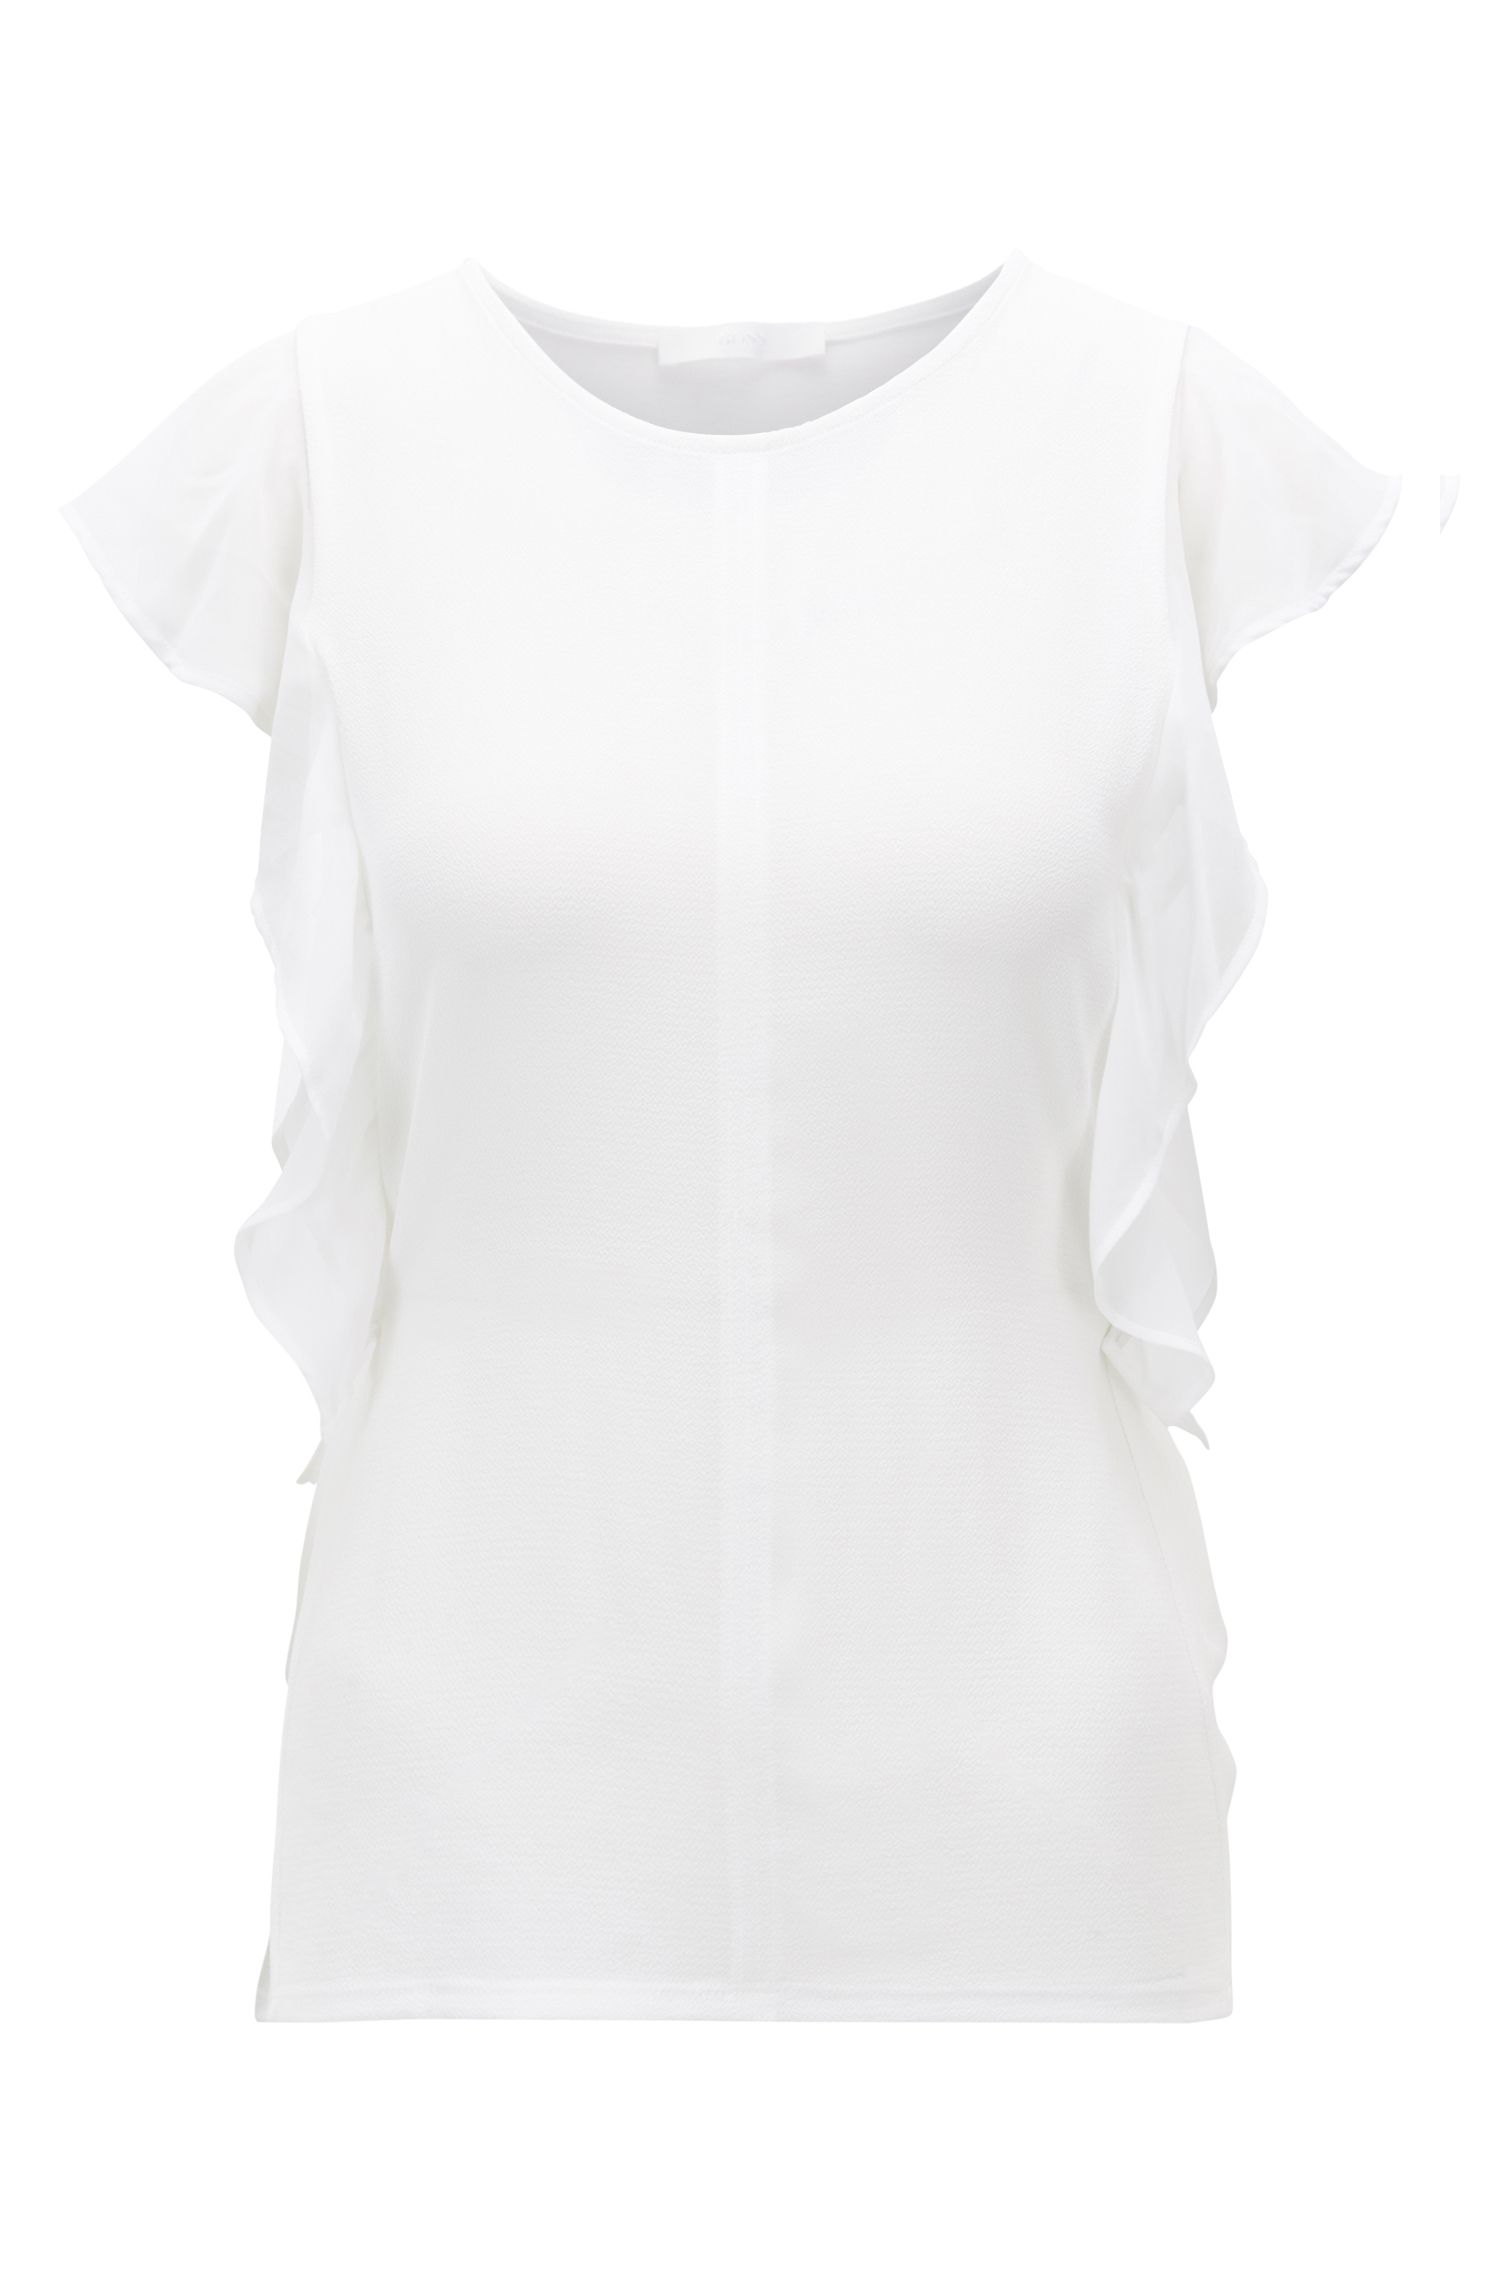 Sleeveless top with frill detail and side-seam buttons